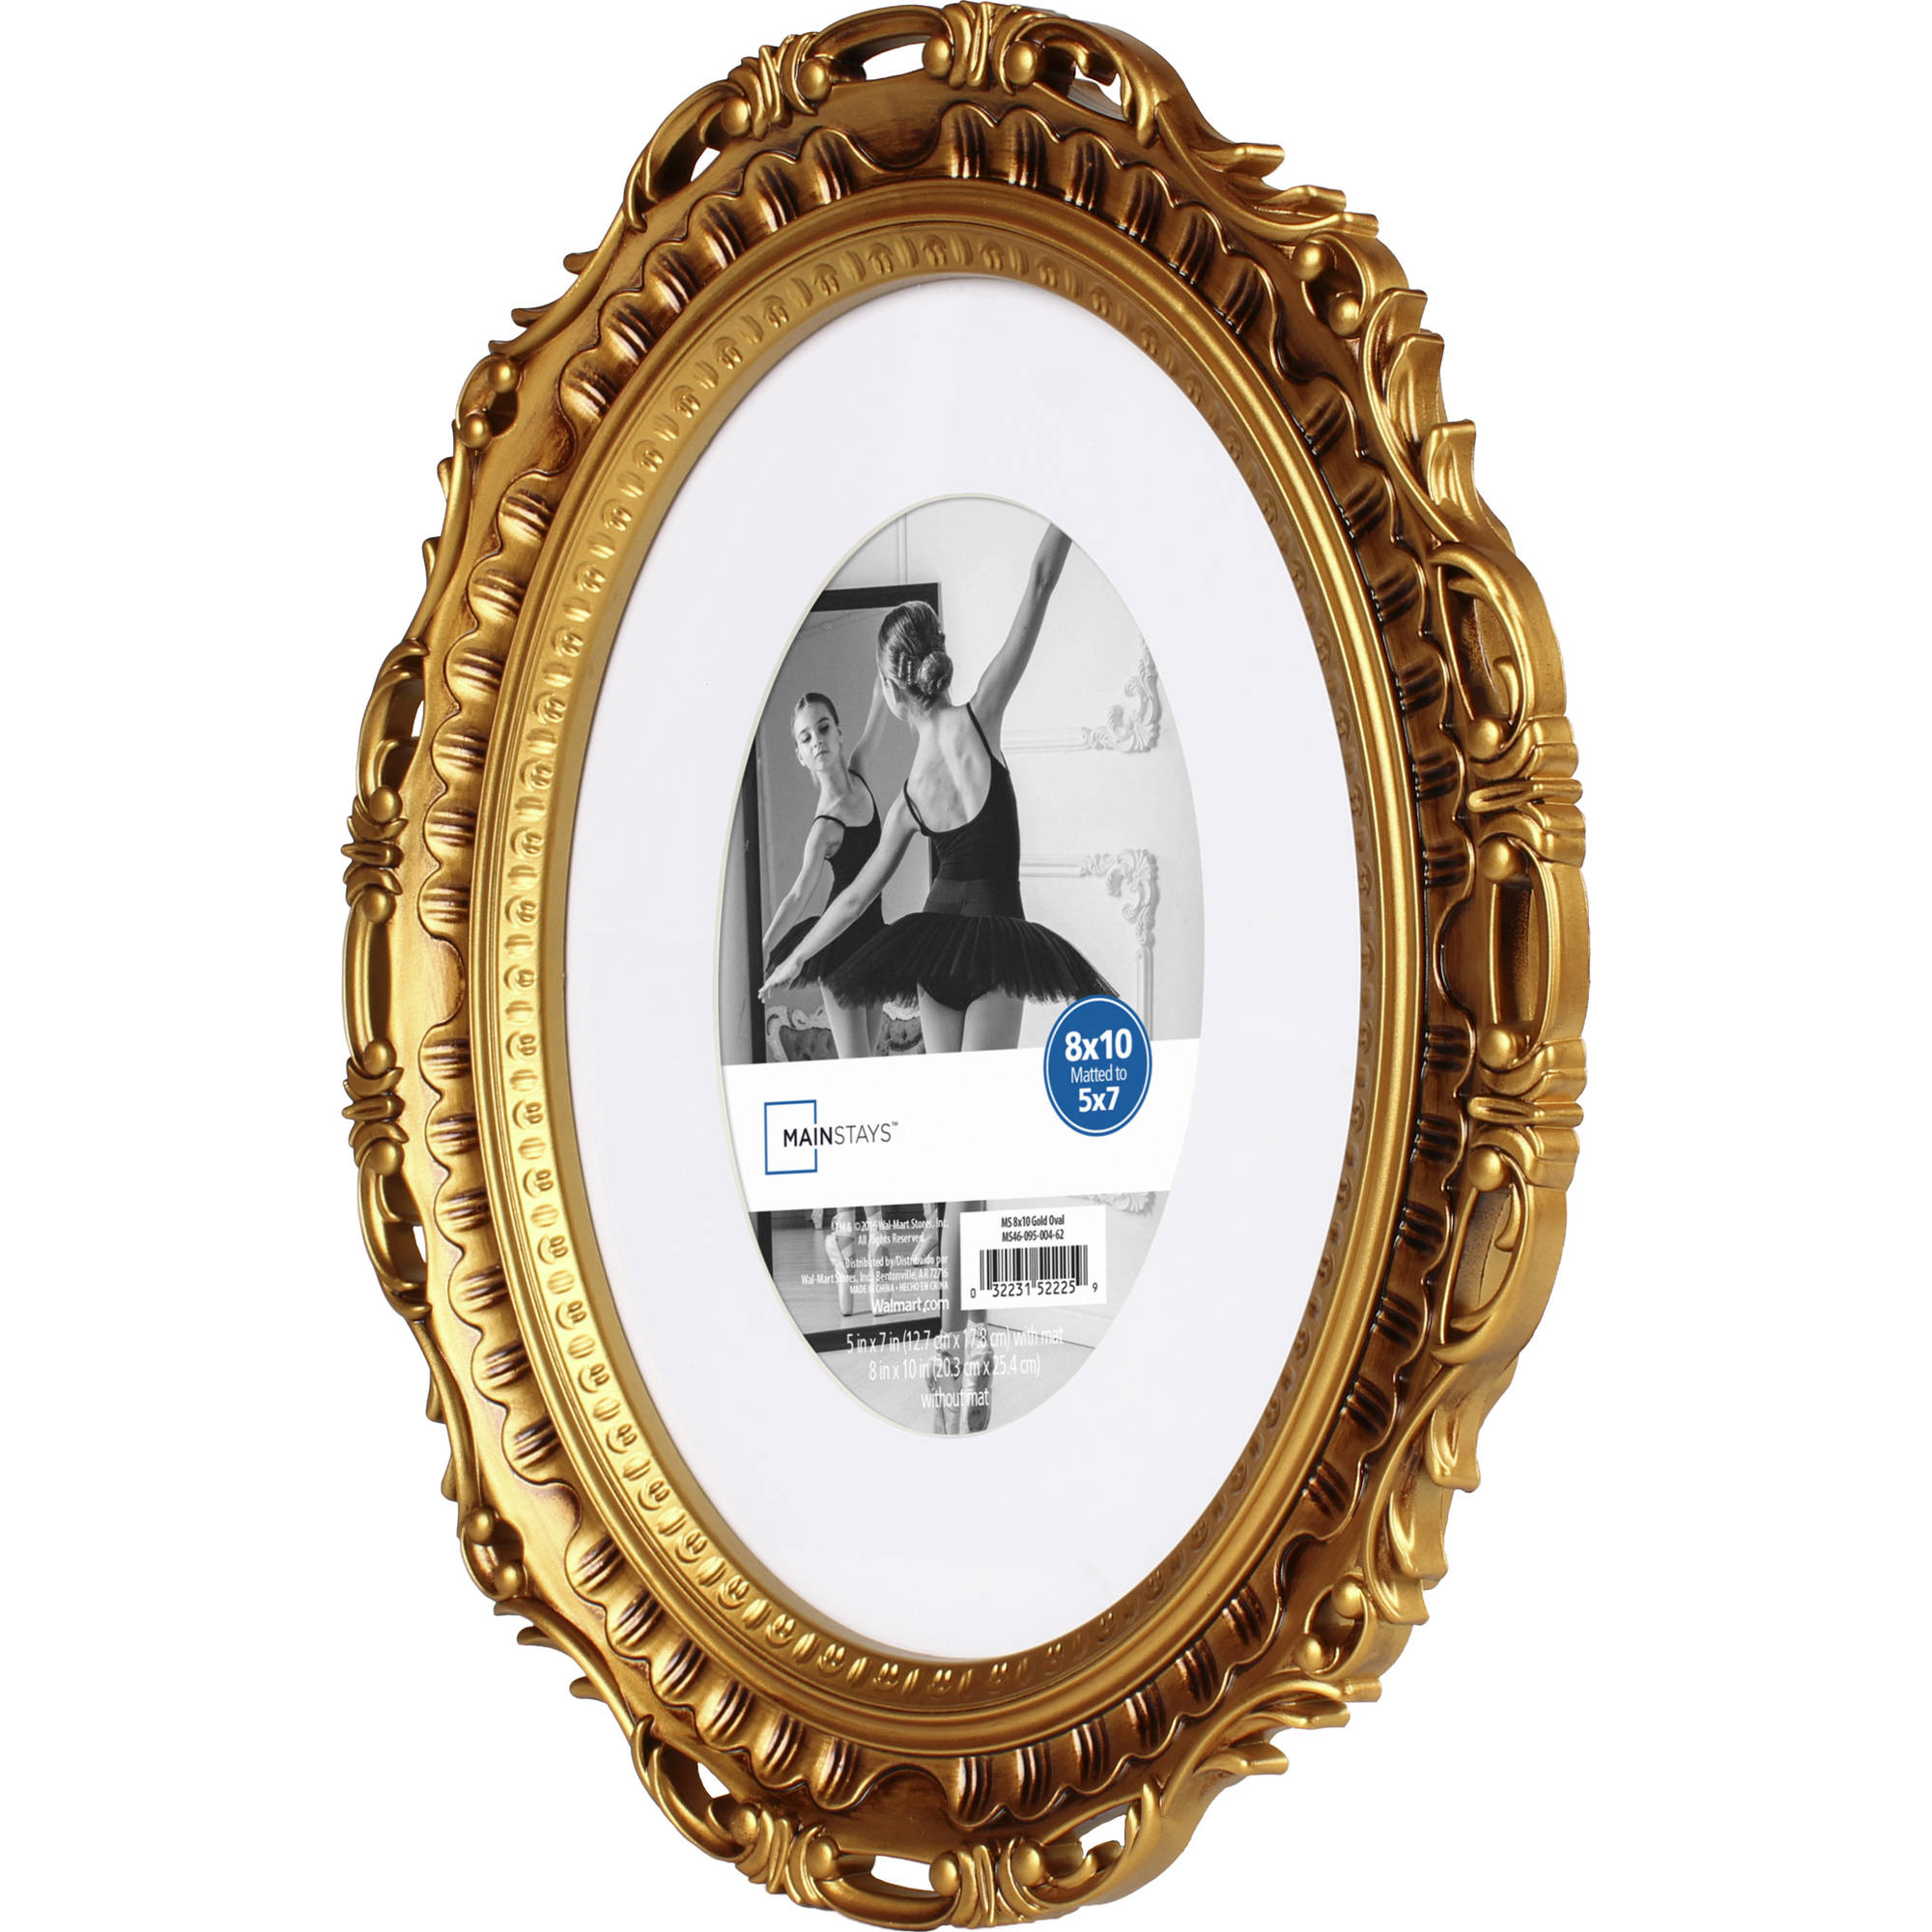 Mainstays Gold 8x10 Matted To 5x7 Oval Picture Frame Walmartcom